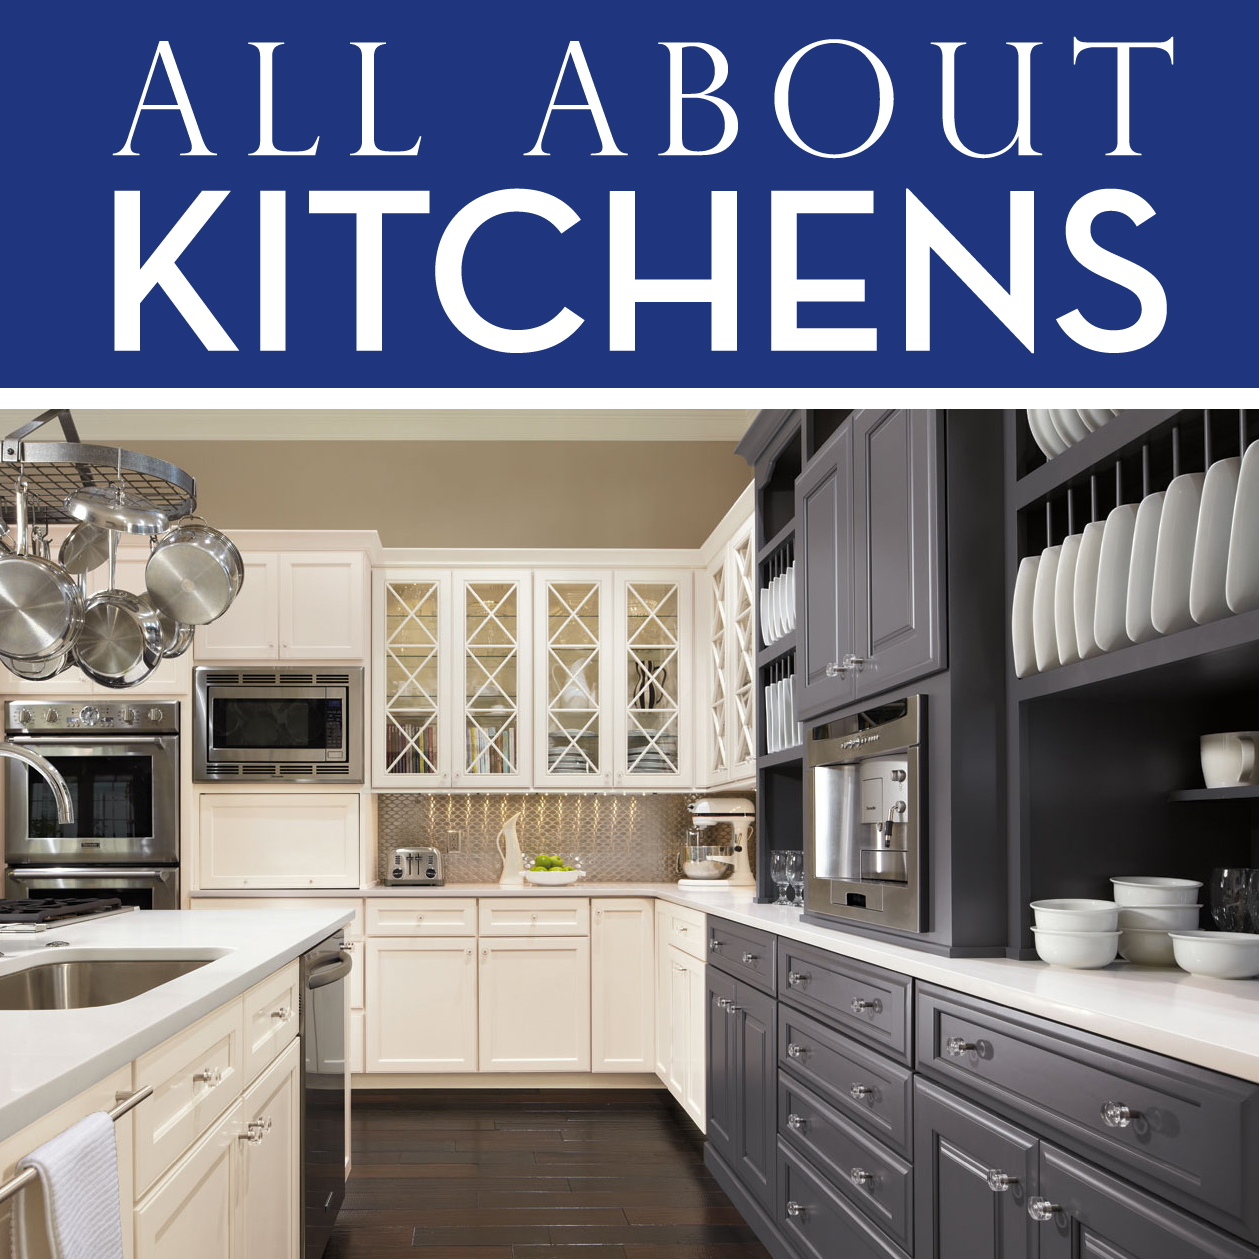 All about kitchens concord nh wolfeboro nh and kennebunk me - All about kitchens ...